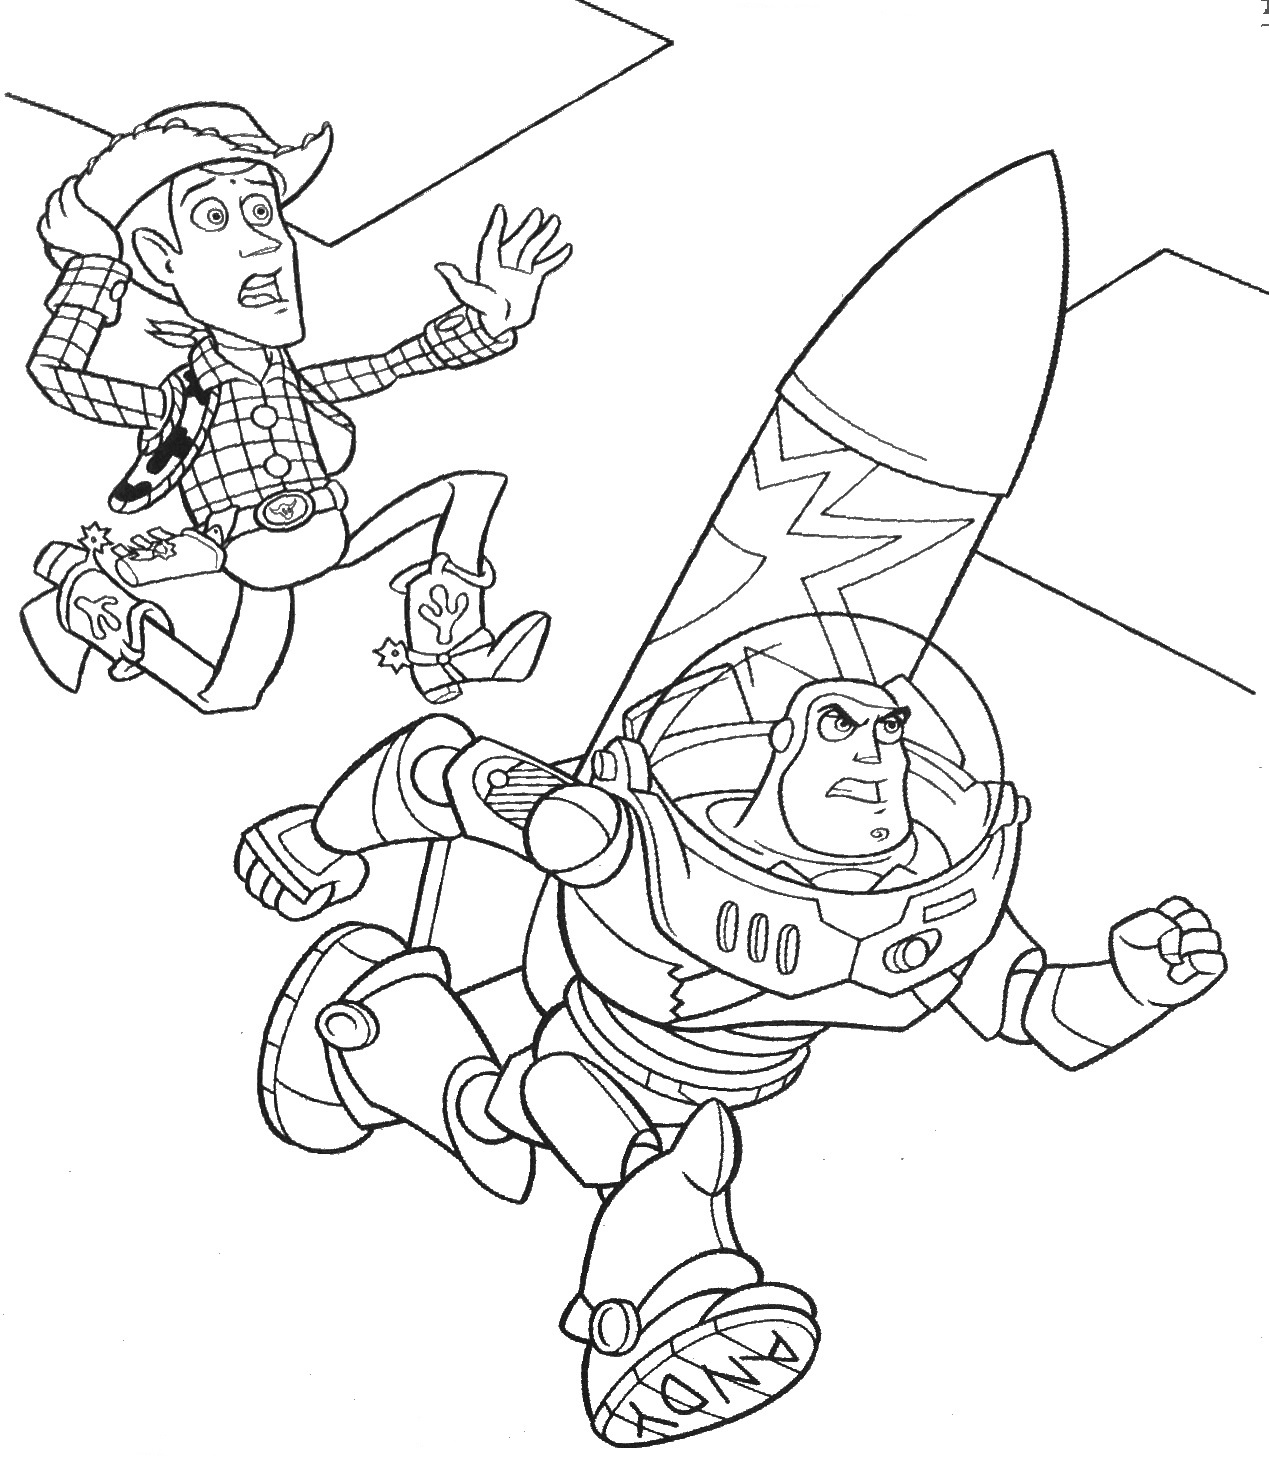 Buzz Lightyear And Woody Coloring Pages At Getdrawings Com Free